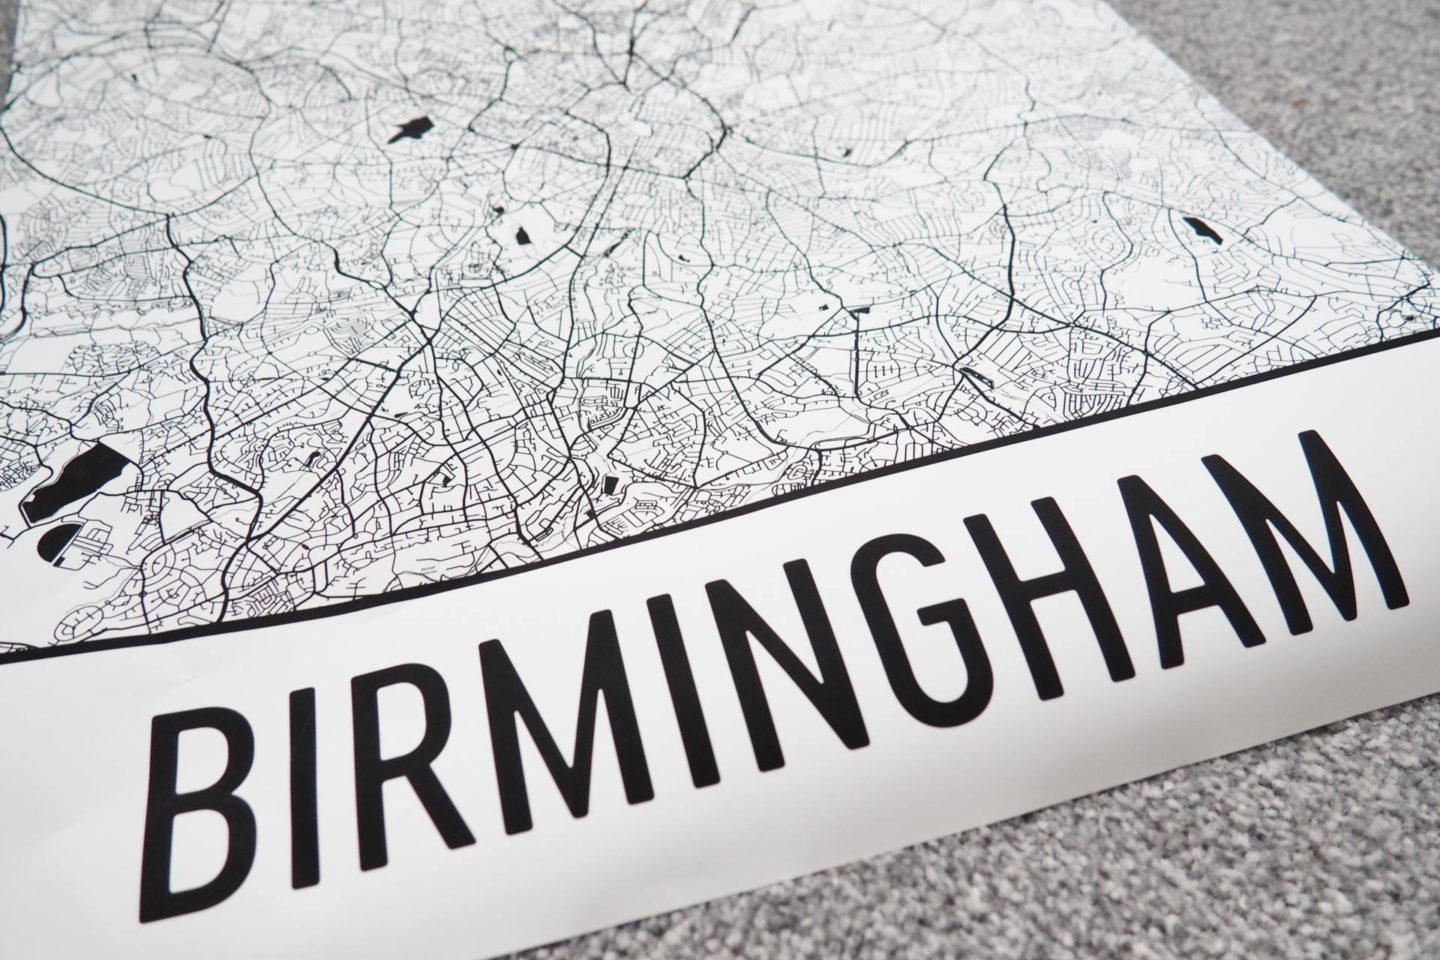 Emma Victoria Stokes Blogger Office Birmingham Map Modern Art